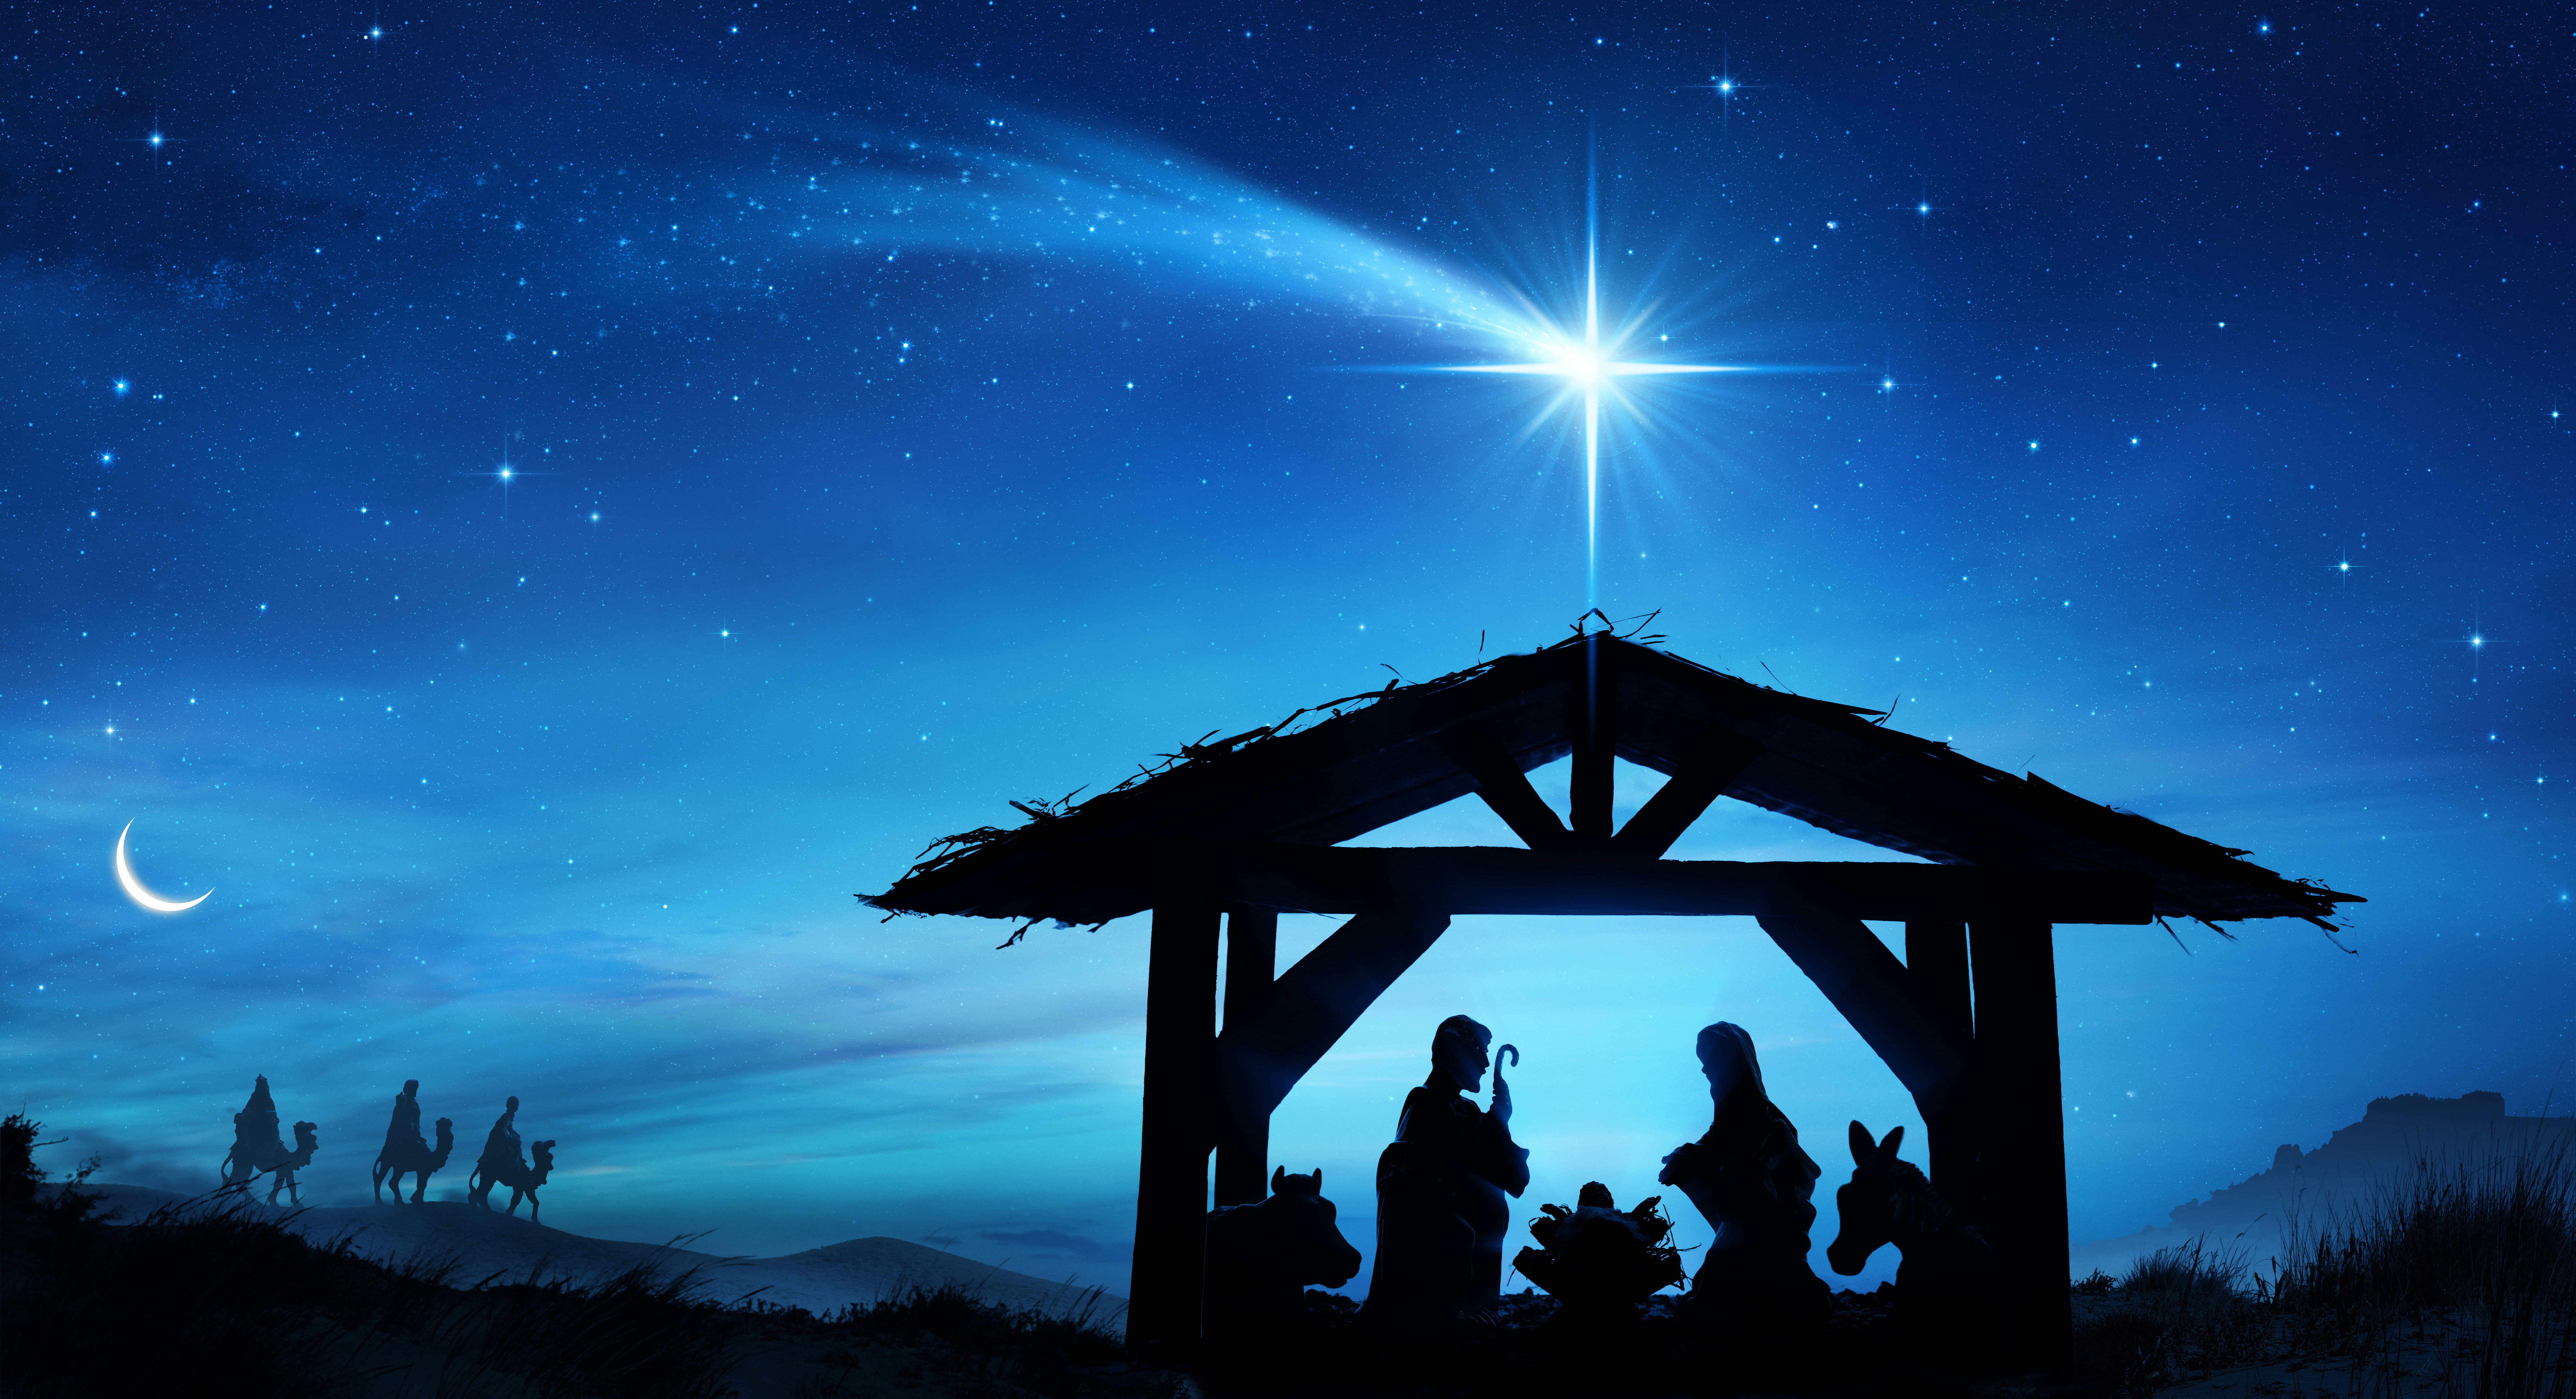 Bible Christmas Story.Christmas Story Luke 2 1 20 From The Kjv Holy Bible The